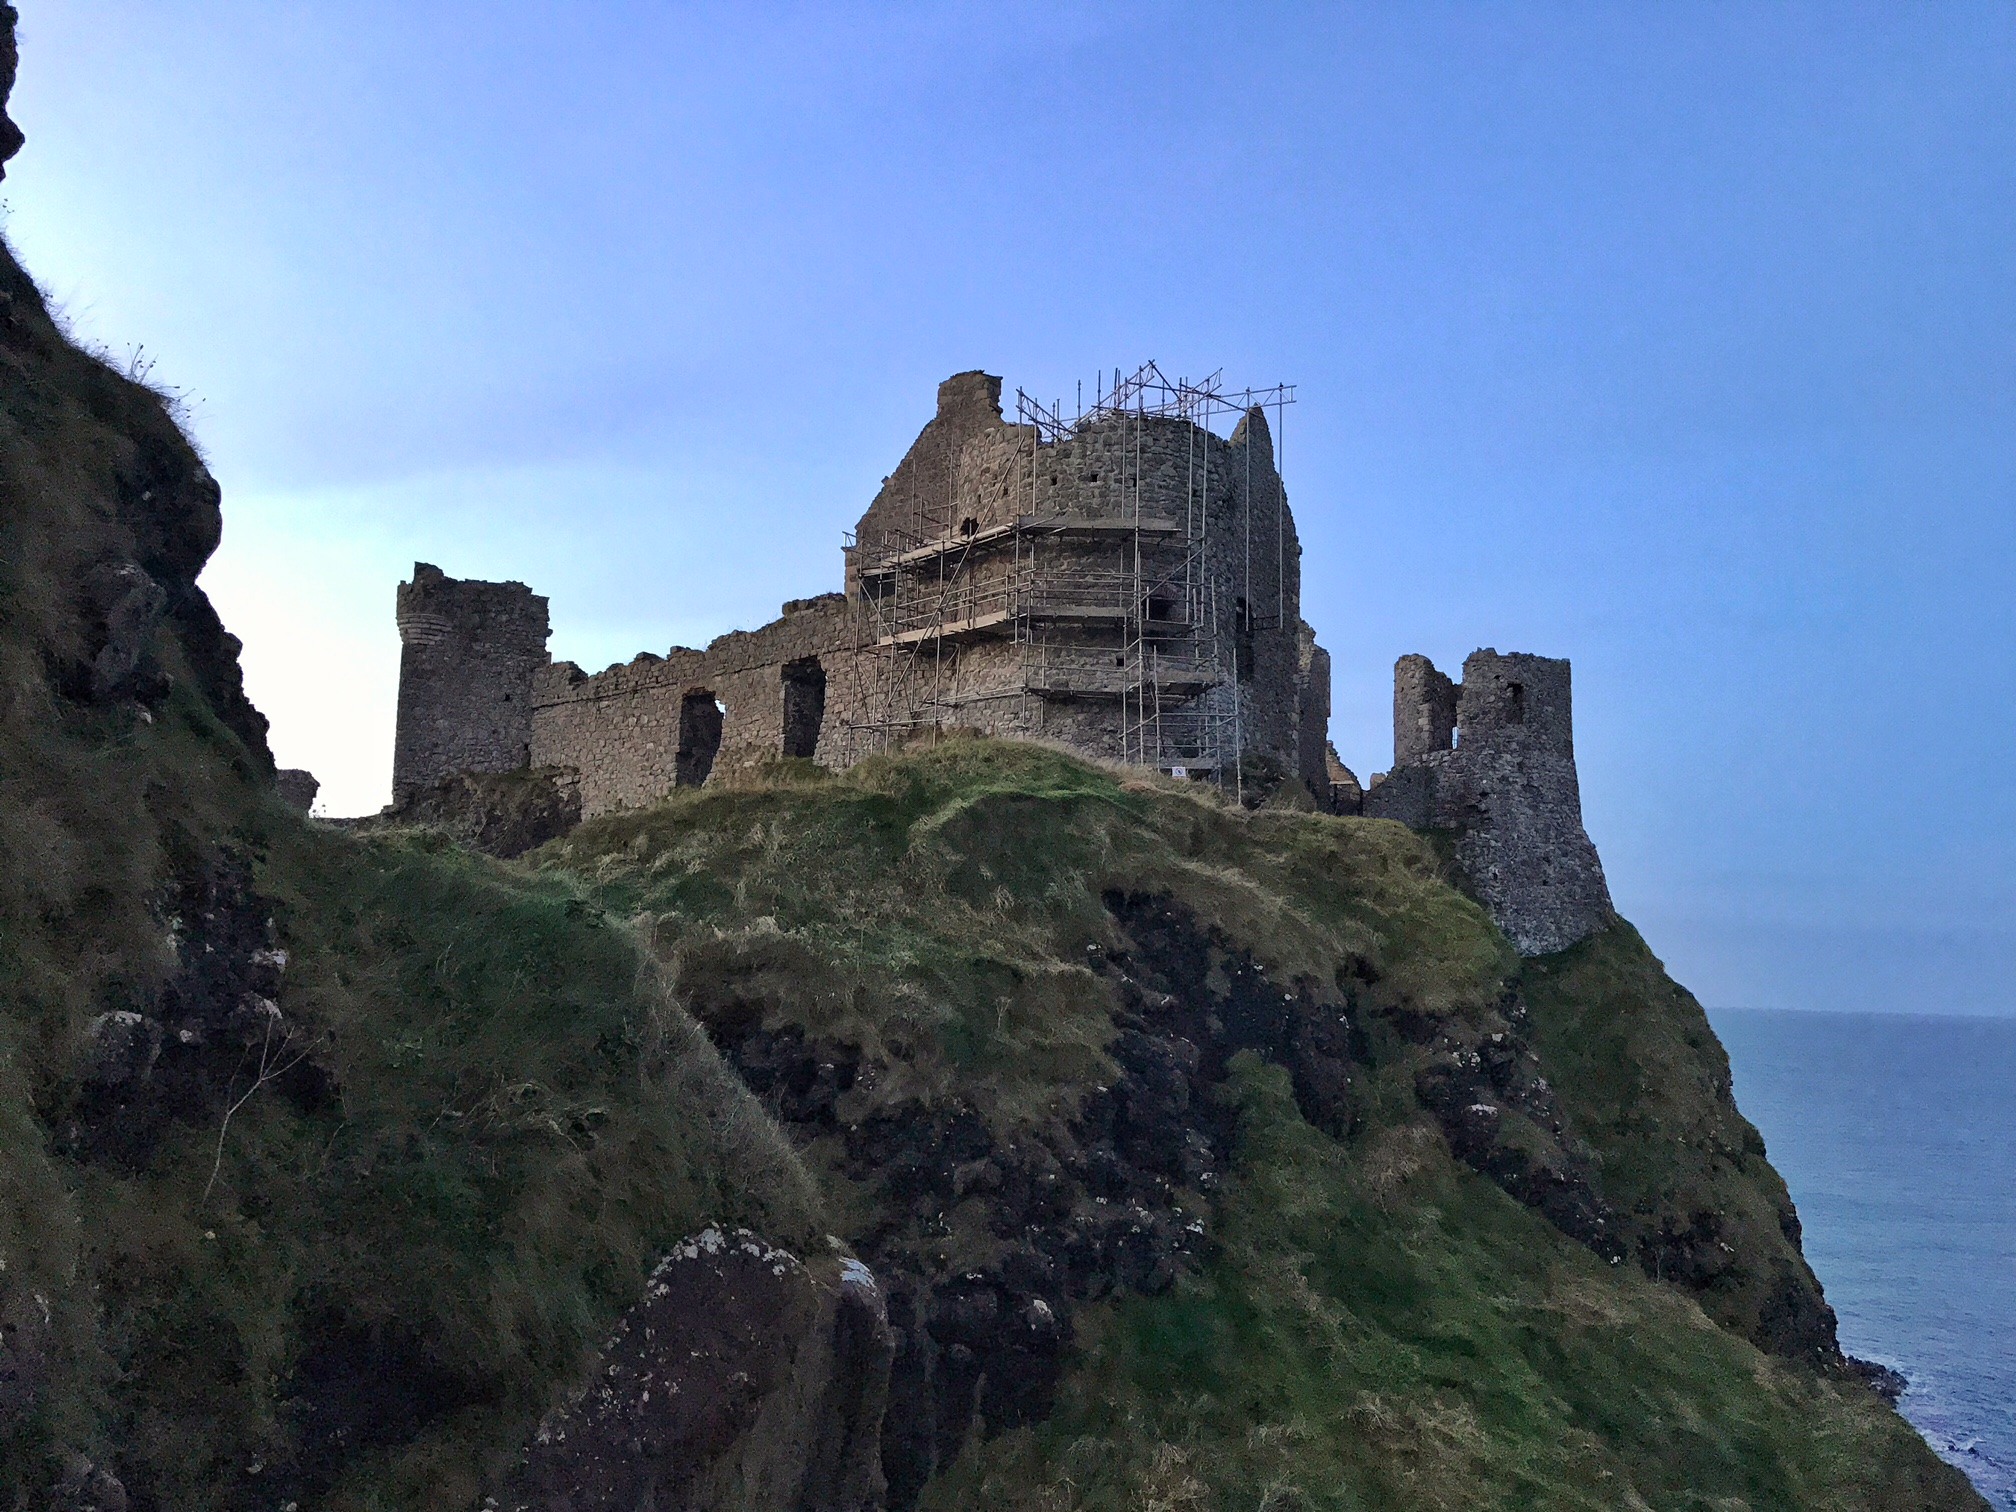 The castle sits 100 feet above the ocean, and also rests above a large sea cave.